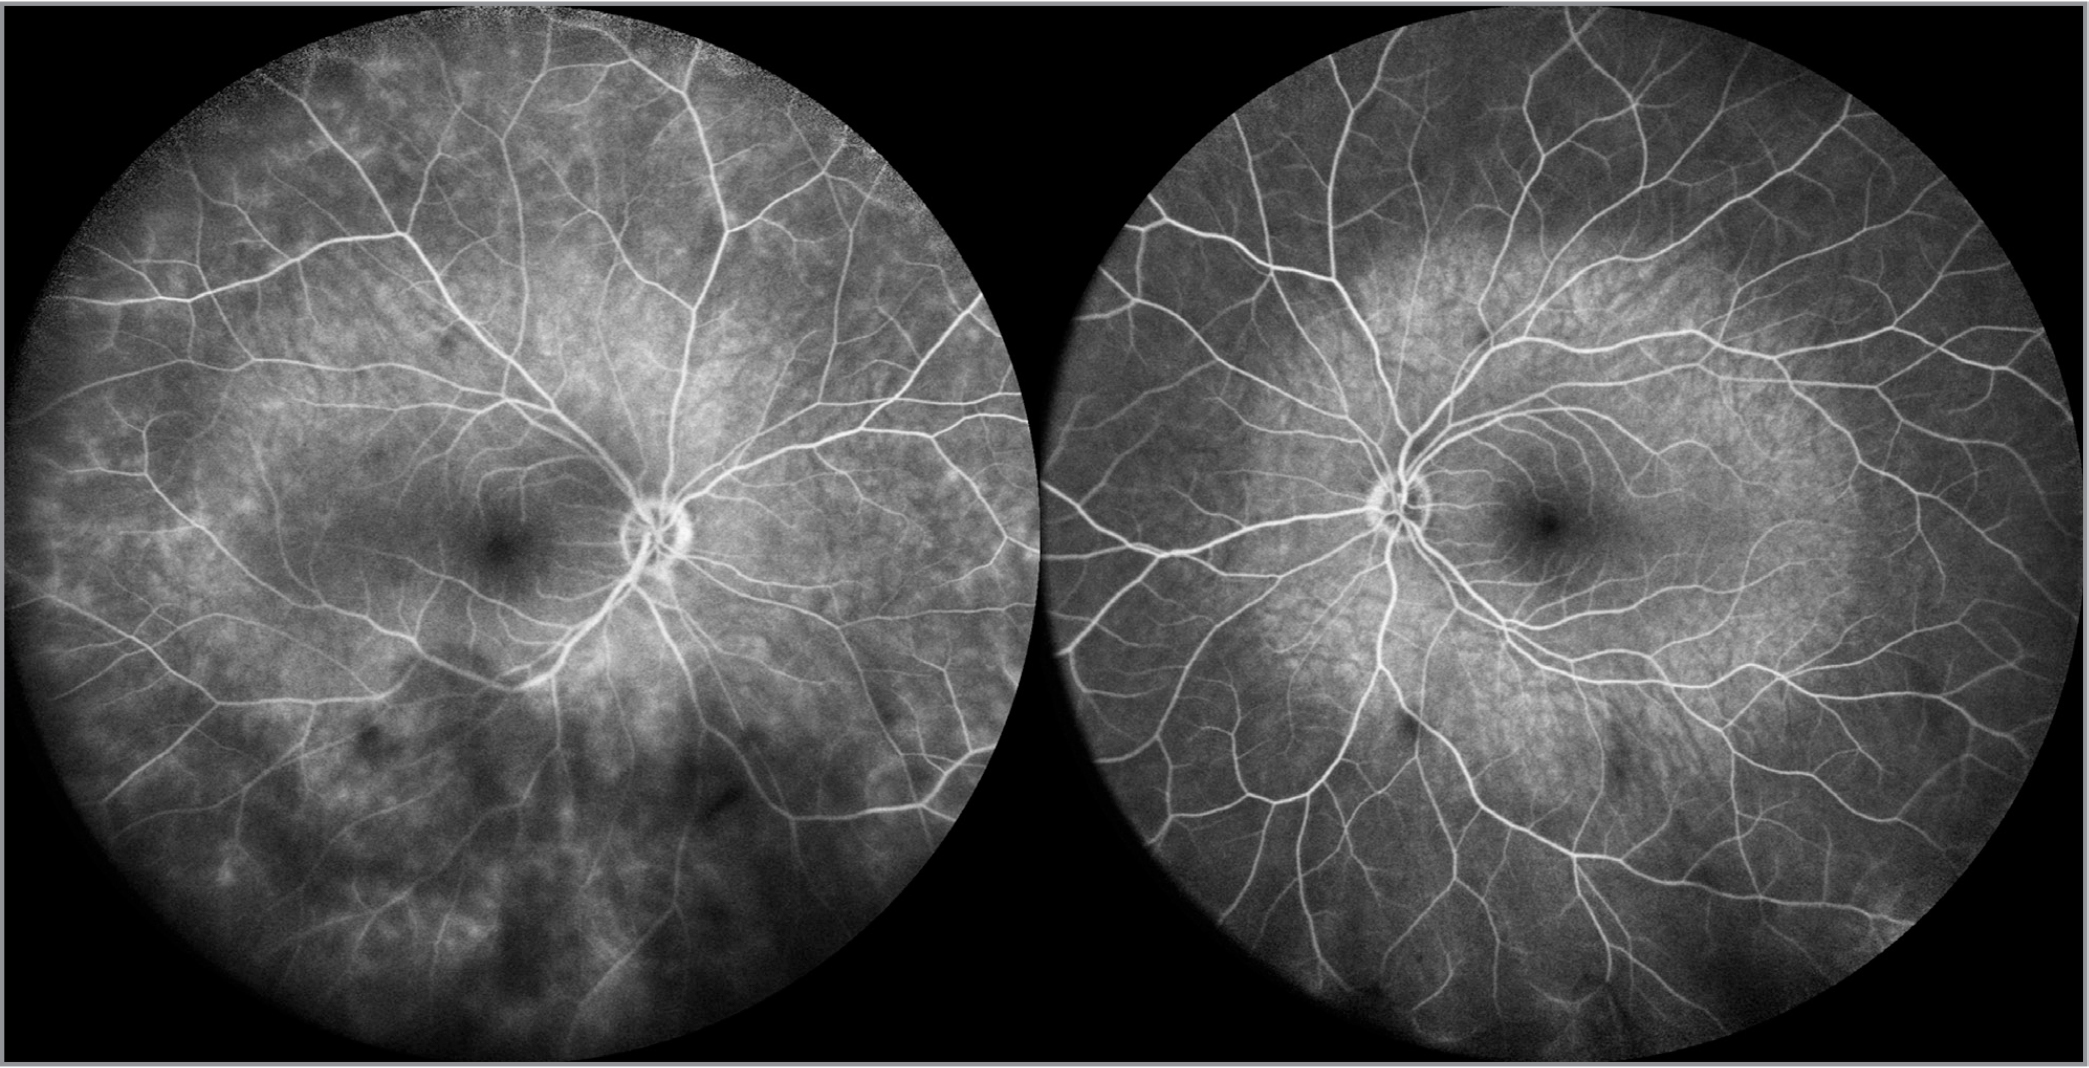 Widefield recirculation phase fluorescein angiography at 102° captured with scanning laser ophthalmoscopy demonstrates round areas of central choroidal hyperfluorescence in right (left panel) and left (right panel) eyes. This circular, well-circumscribed pattern is due to photobleaching from intense, short-wavelength light emission during earlier acquisition with the 55° lens, contrasted with adjacent, unaffected peripheral retina.